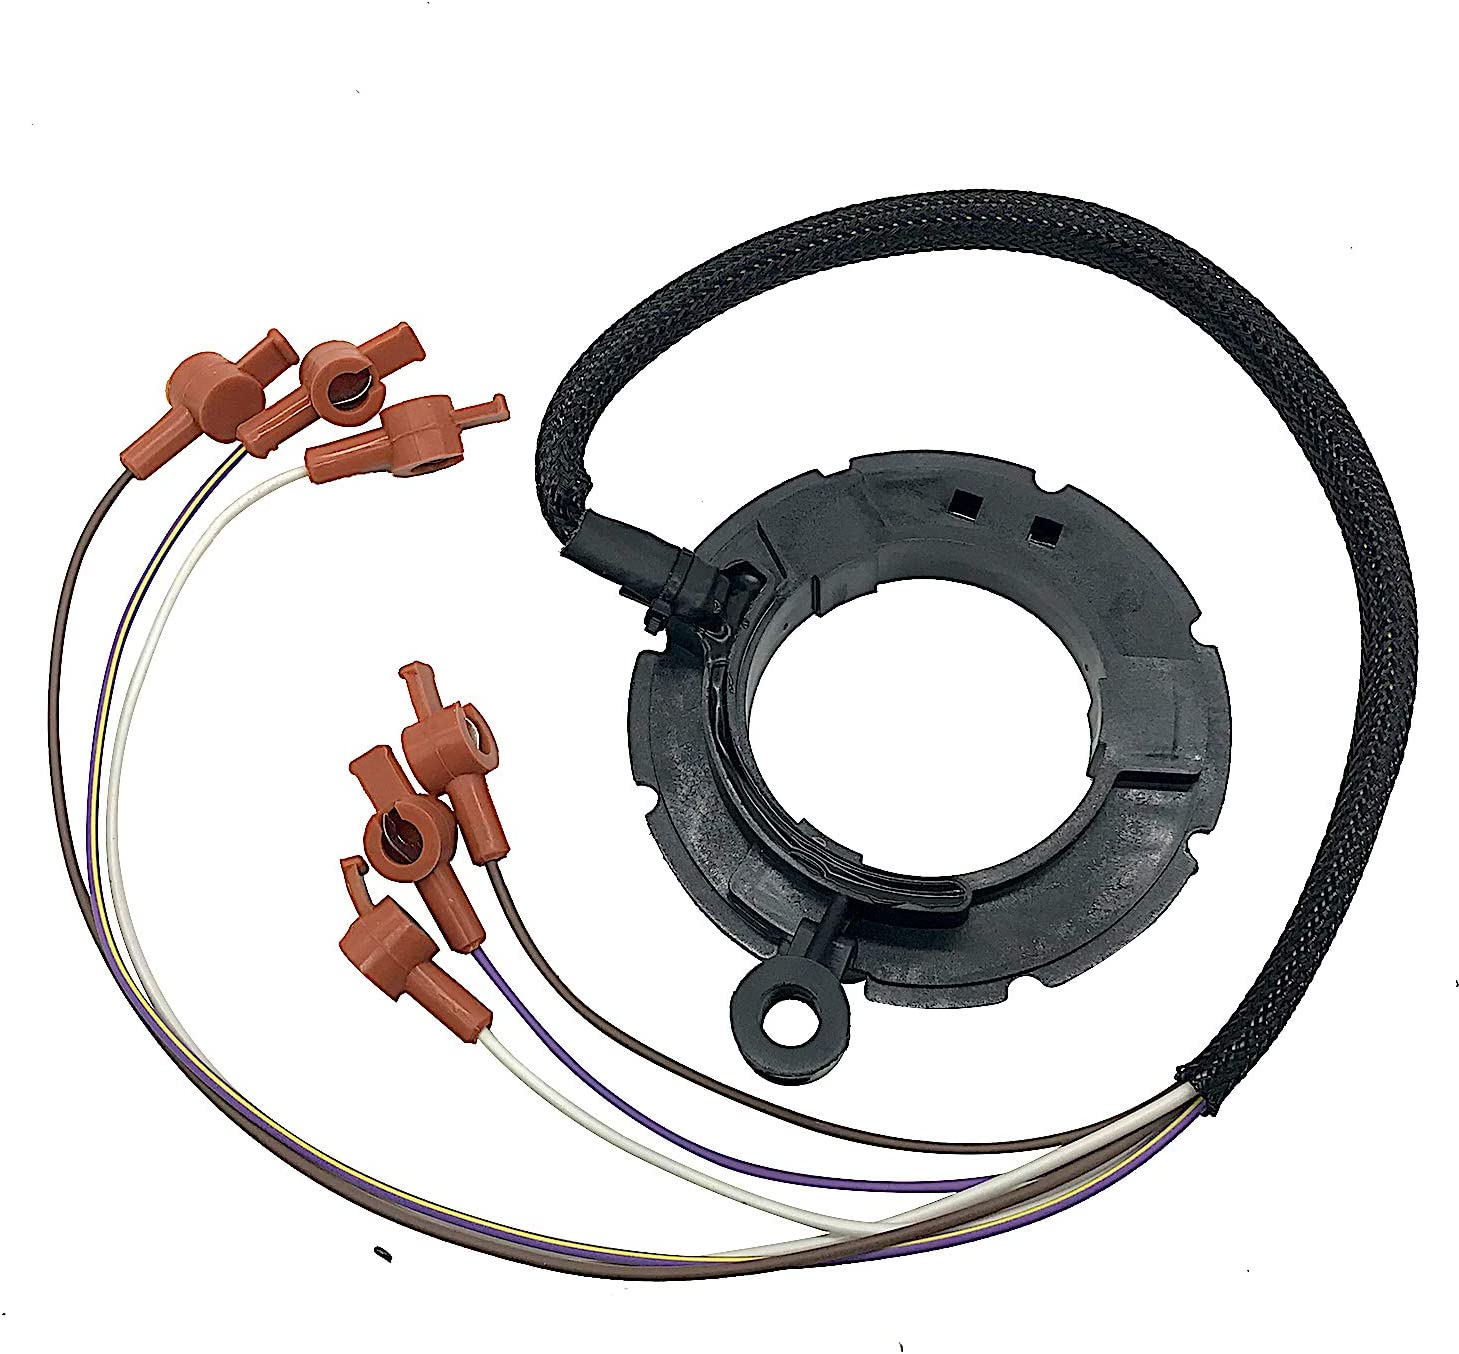 JETUNIT TRIGGER FOR MERCURY 90-225 HP 134-6456 18-5798 68162A1 68162A5 68162A8 96454 96455A6 96455A9 96455A10 96455A11